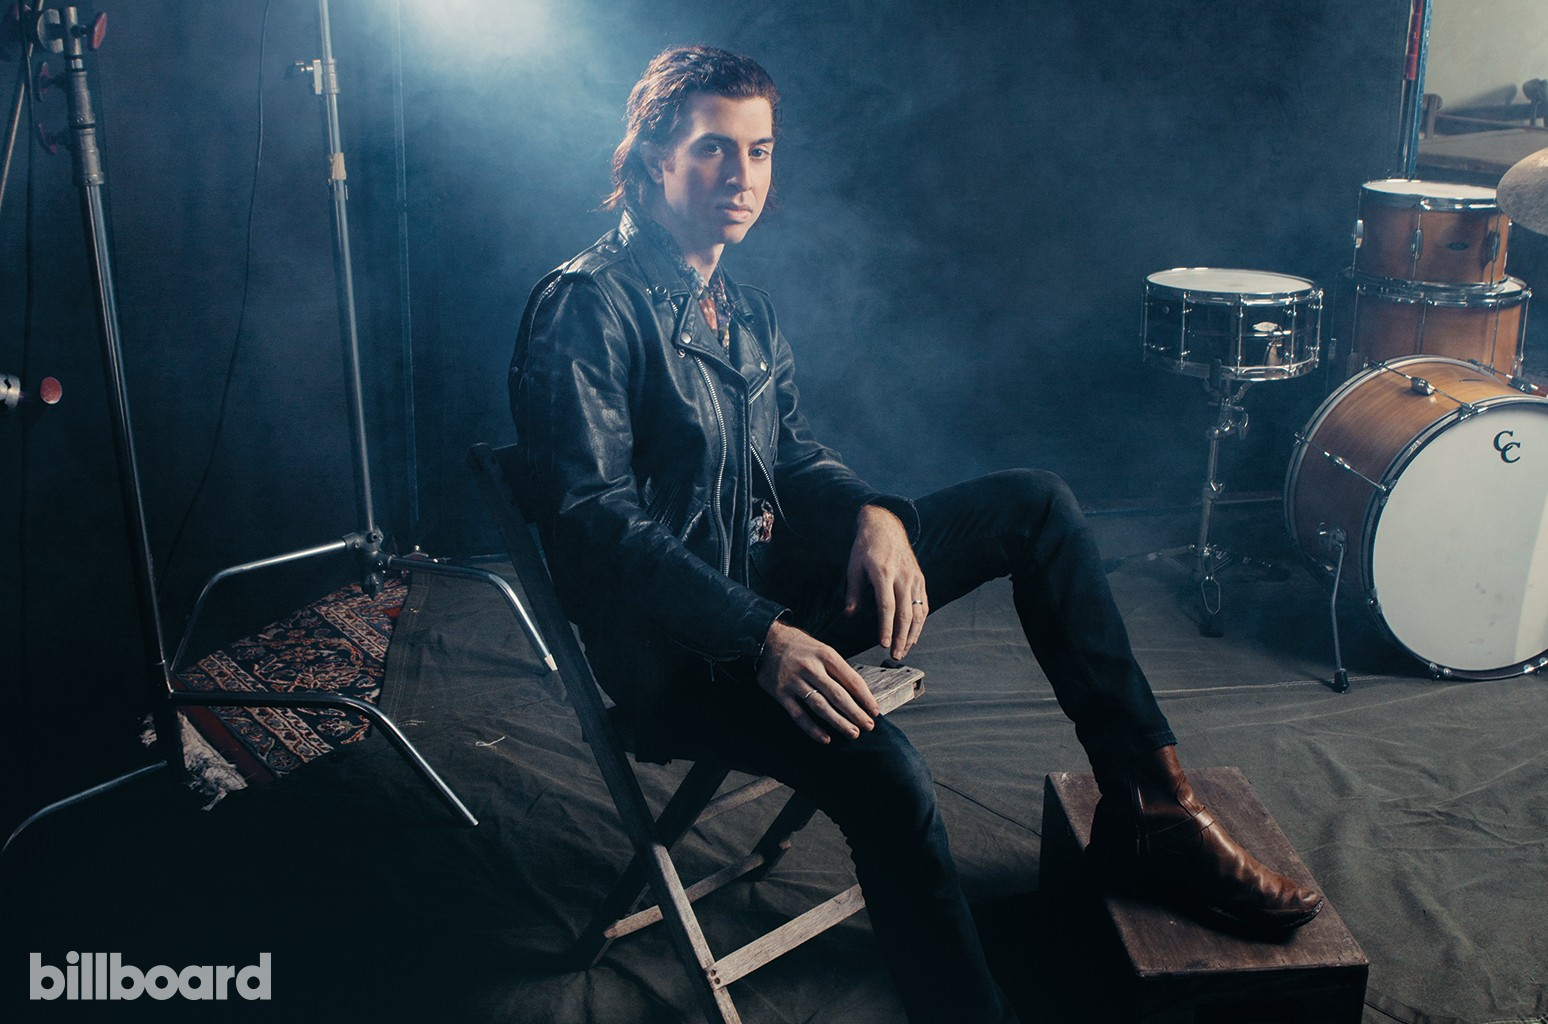 Dorio photographed Nov. 1 at The Boundry in  Nashville with the drum kit he played at The Bataclan.